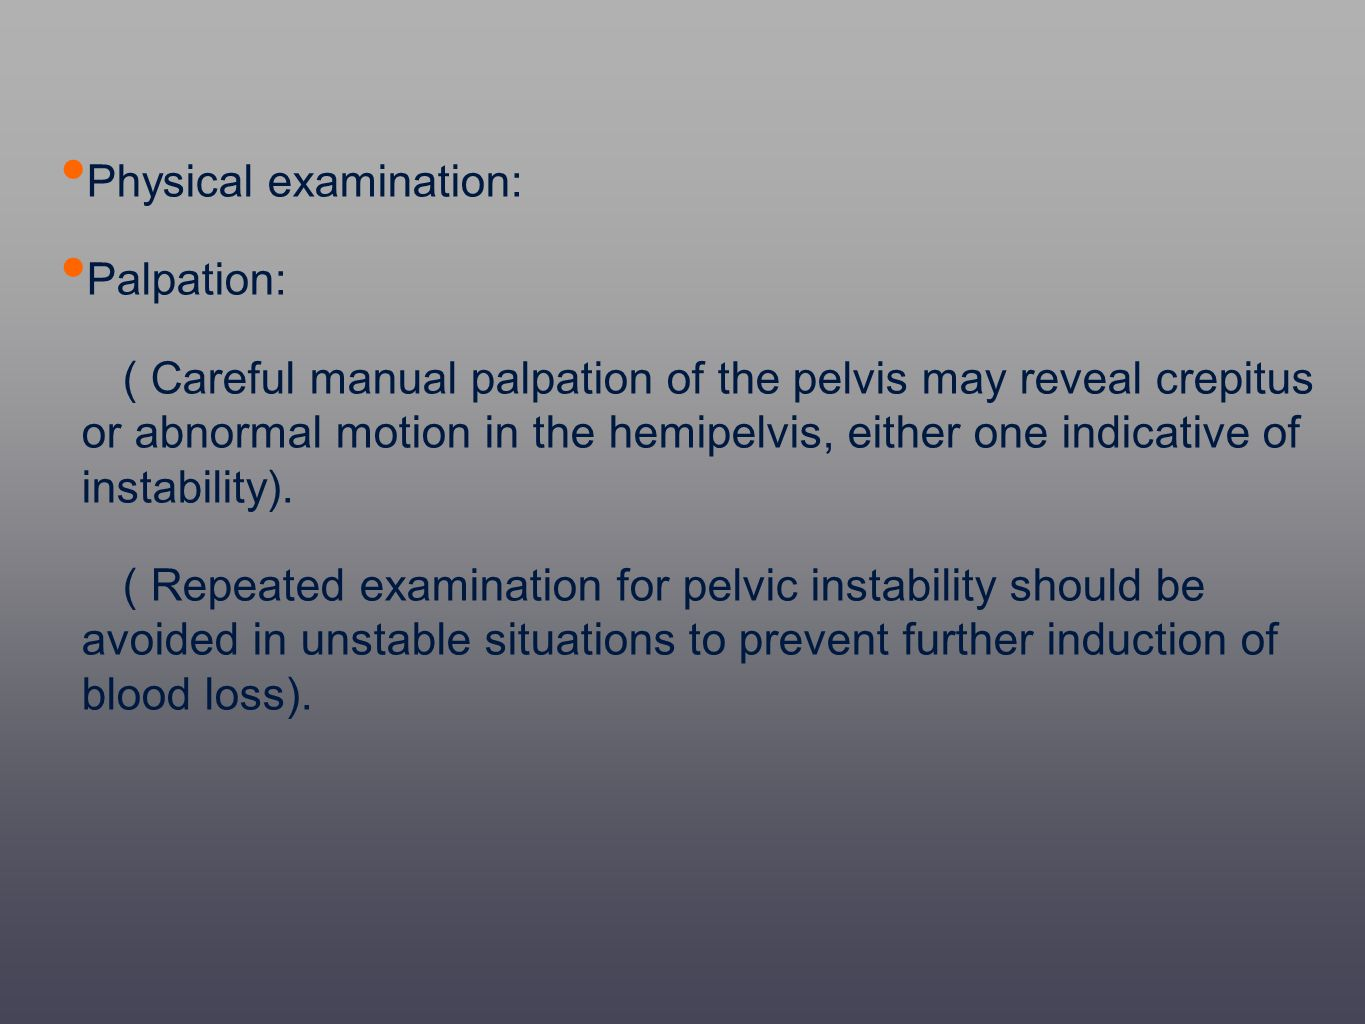 Physical examination: Palpation: ( Careful manual palpation of the pelvis may reveal crepitus or abnormal motion in the hemipelvis, either one indicat